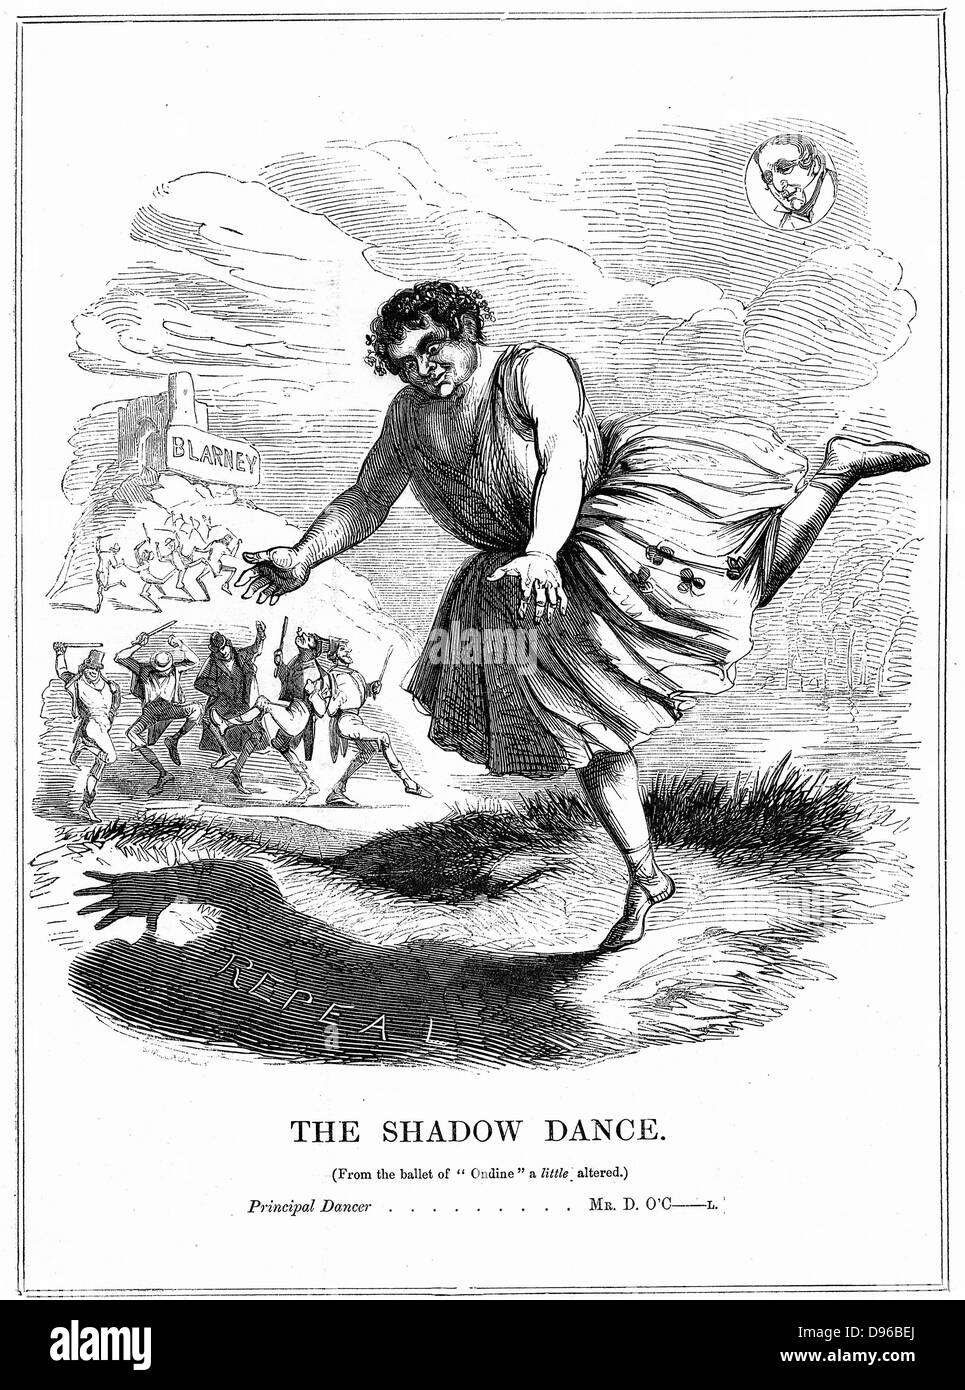 The Shadow Dance' Daniel O'Connell (1775-1847) 'The Liberator', Irish politician, leader of the - Stock Image